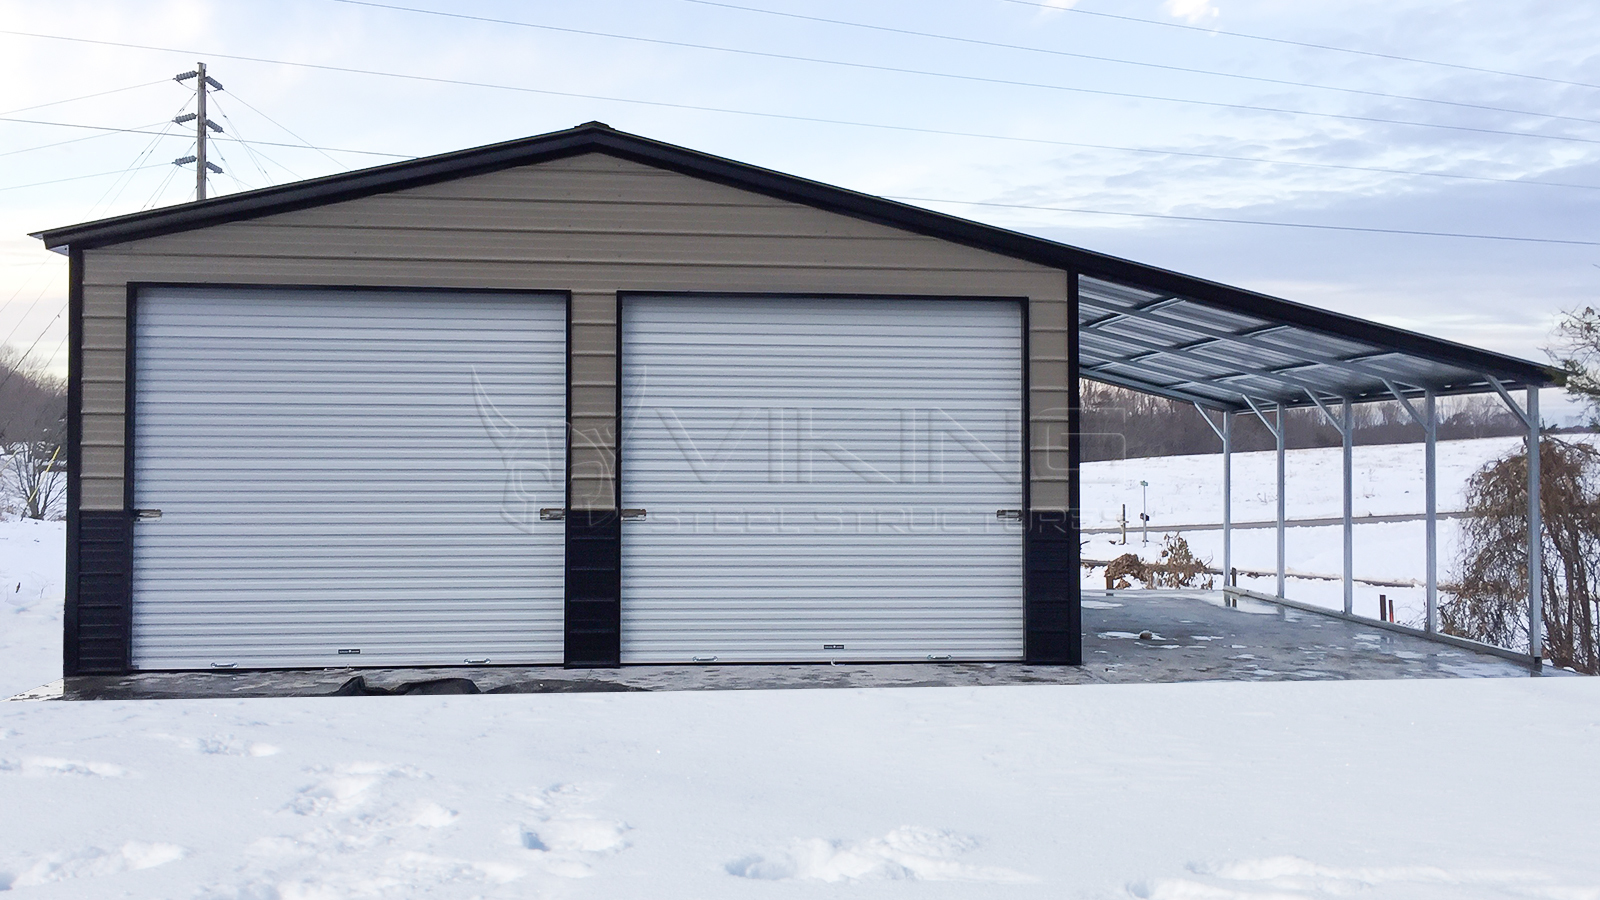 Why You Should Get a Prefab Lean-To Metal Carport